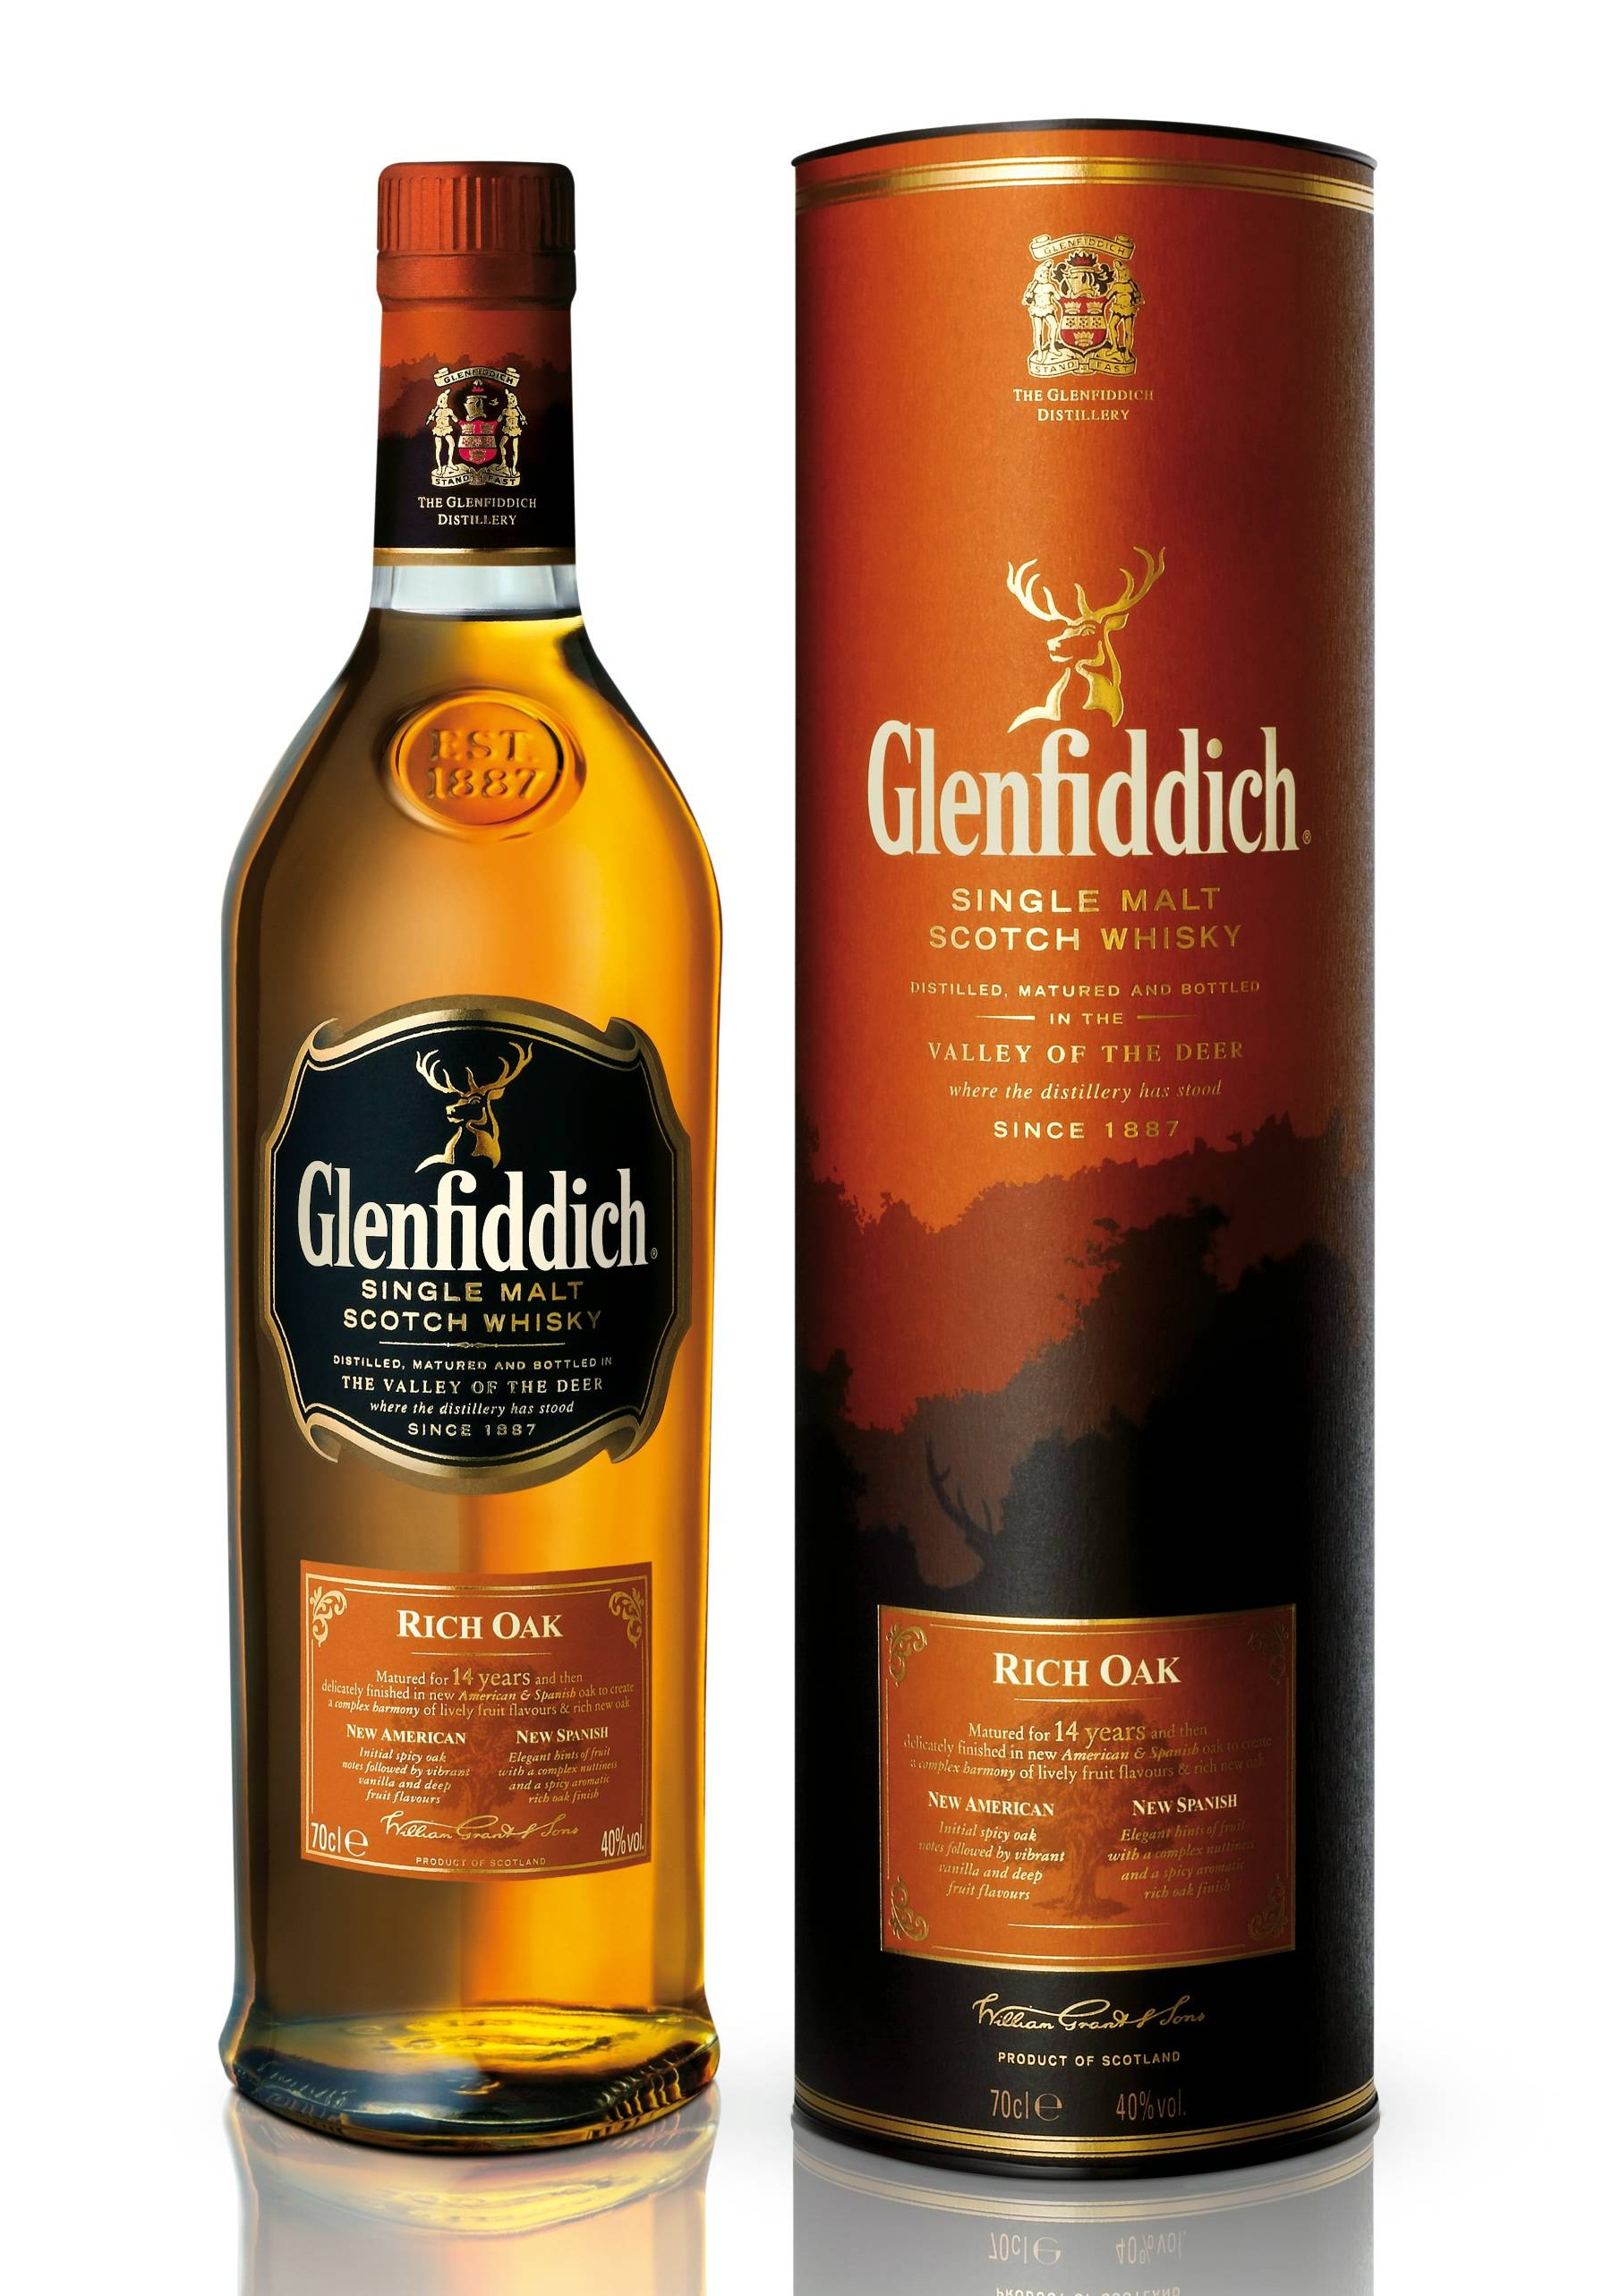 One day you will. Glenfiddich Rich Oak. | Everyday Drinking: http://everydaydrinking.wordpress.com/2011/09/29/one-day-you-will-glenfiddich-rich-oak/